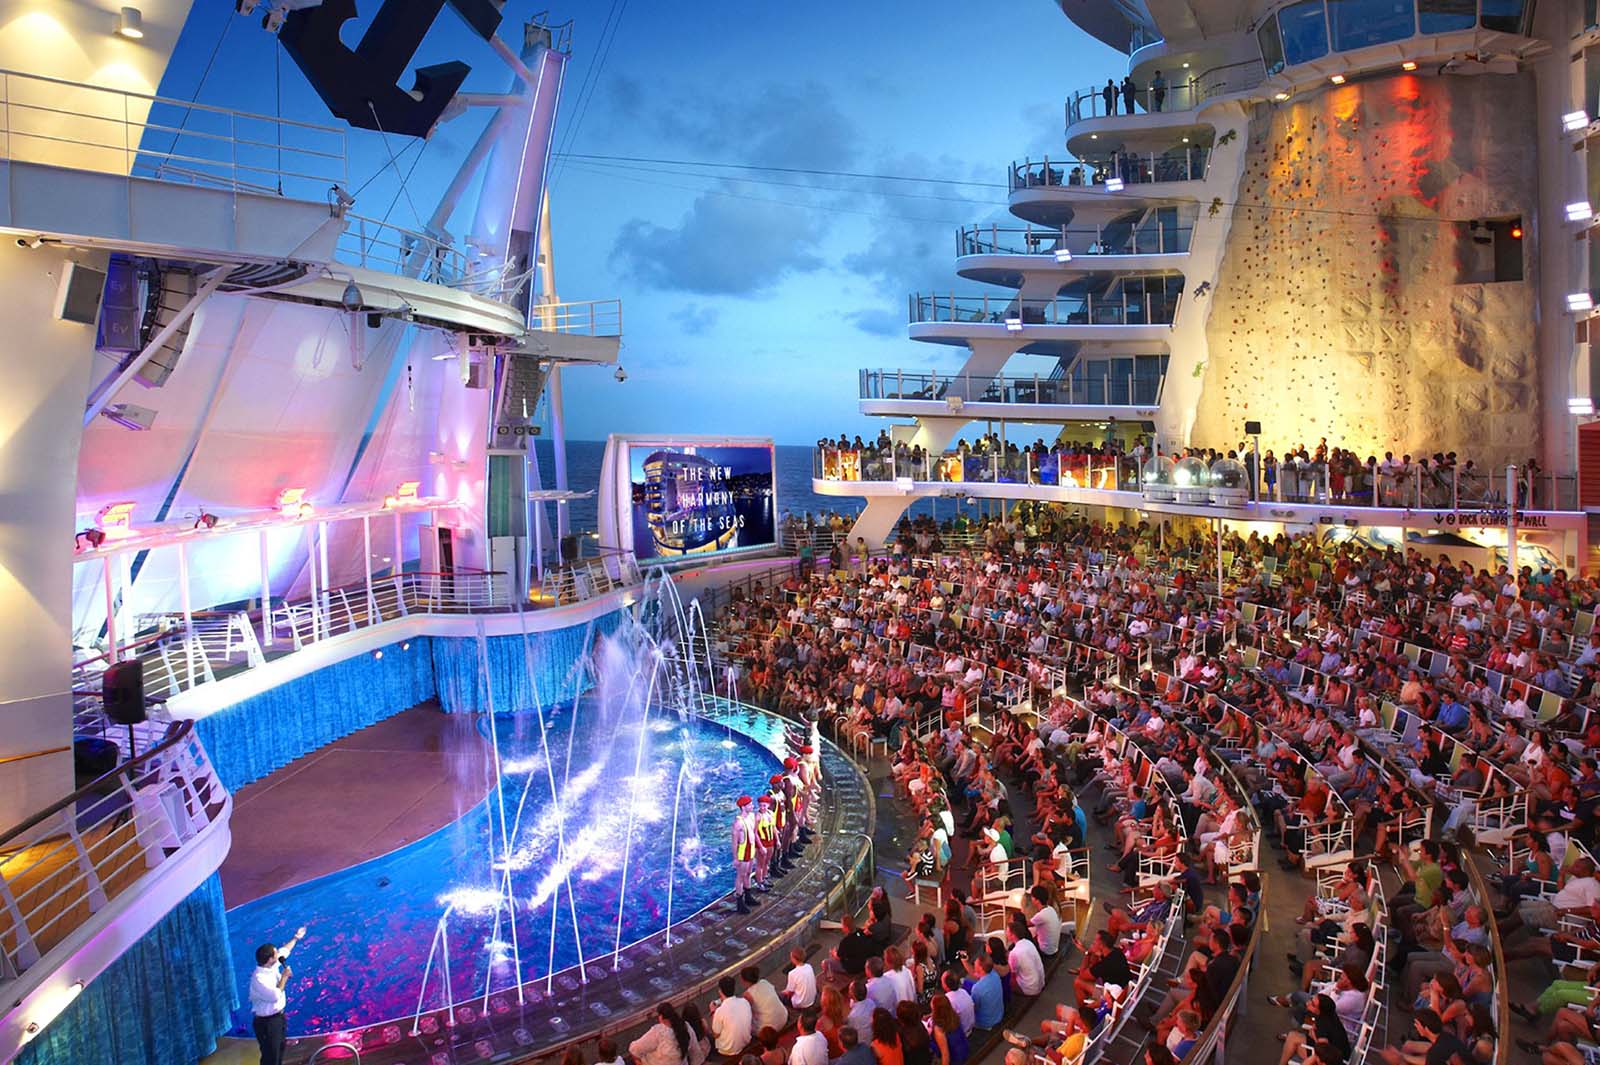 Entertainment - Harmony of the Seas